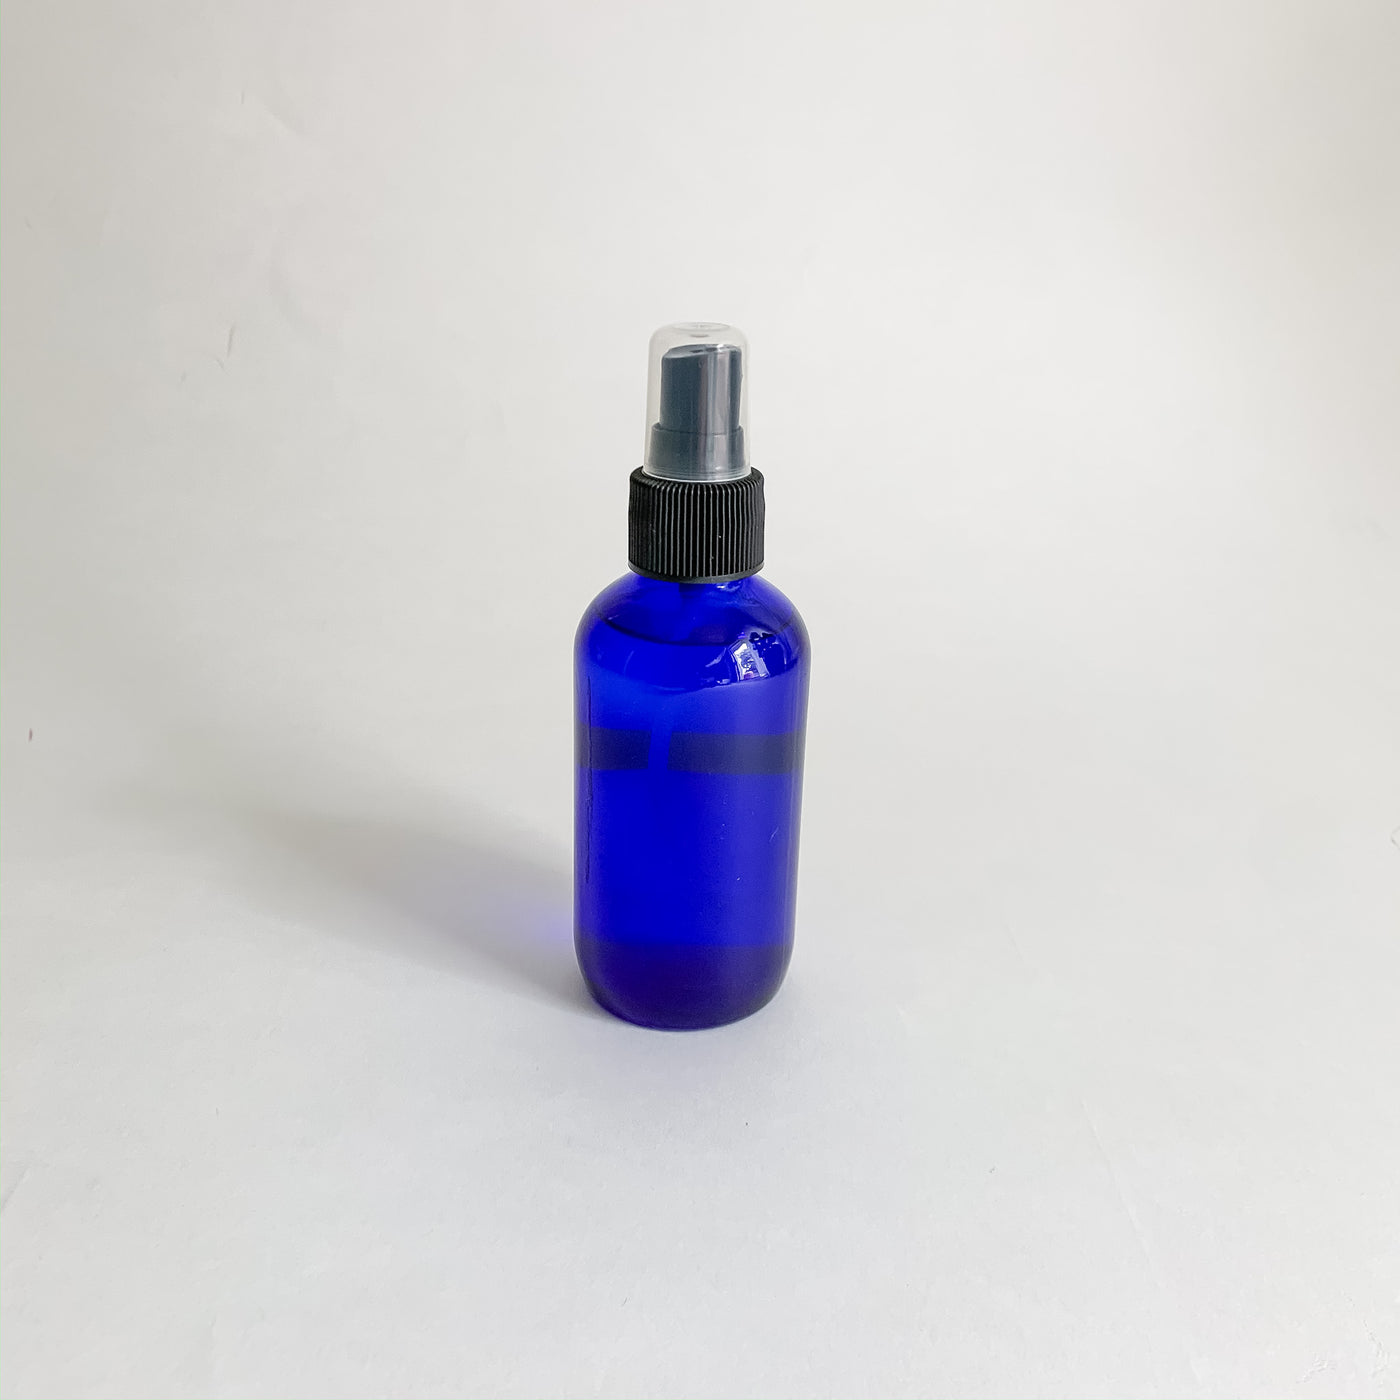 Non-toxic Essential Oil Hand Sanitizer - Studio Pillows